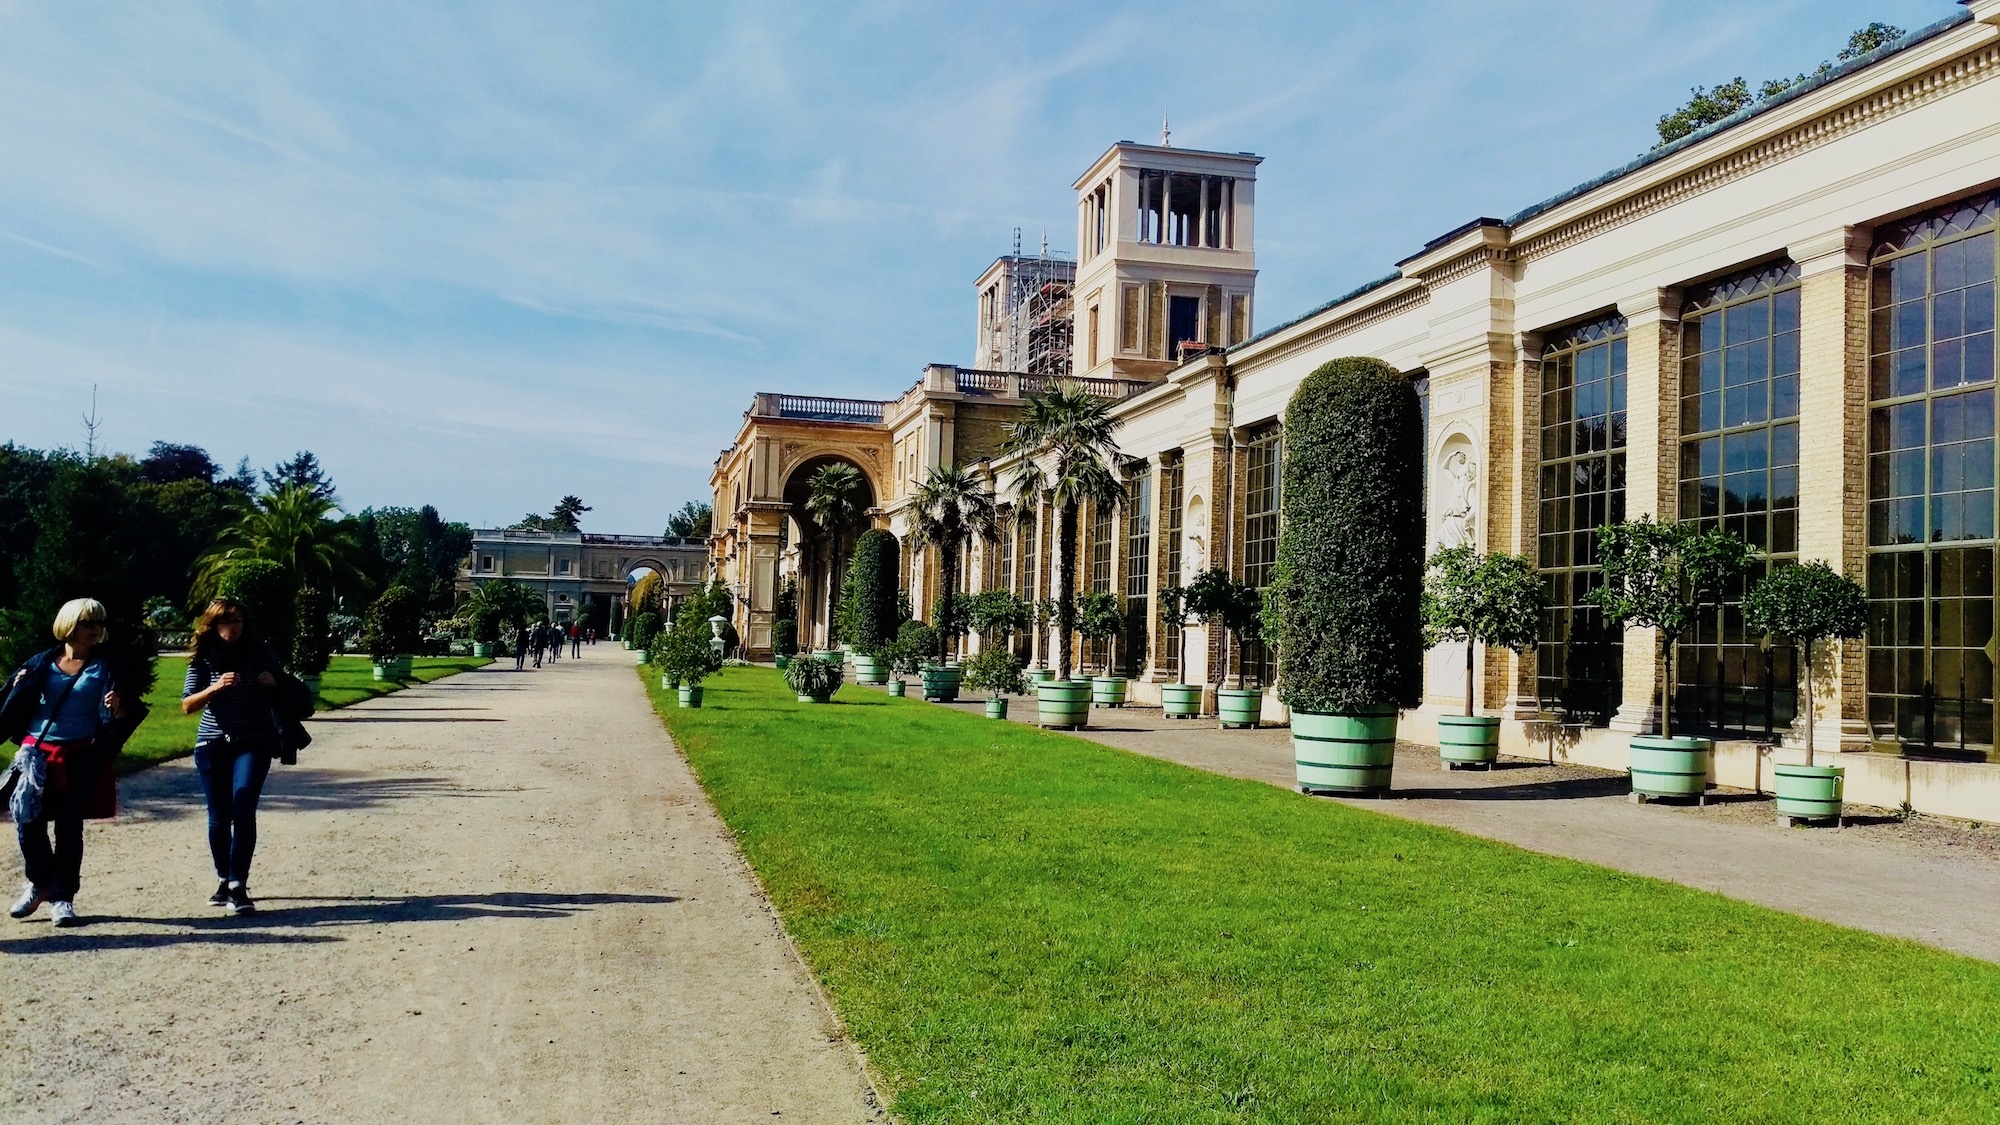 The Orangery Palace is a palace located in the Sanssouci Park.